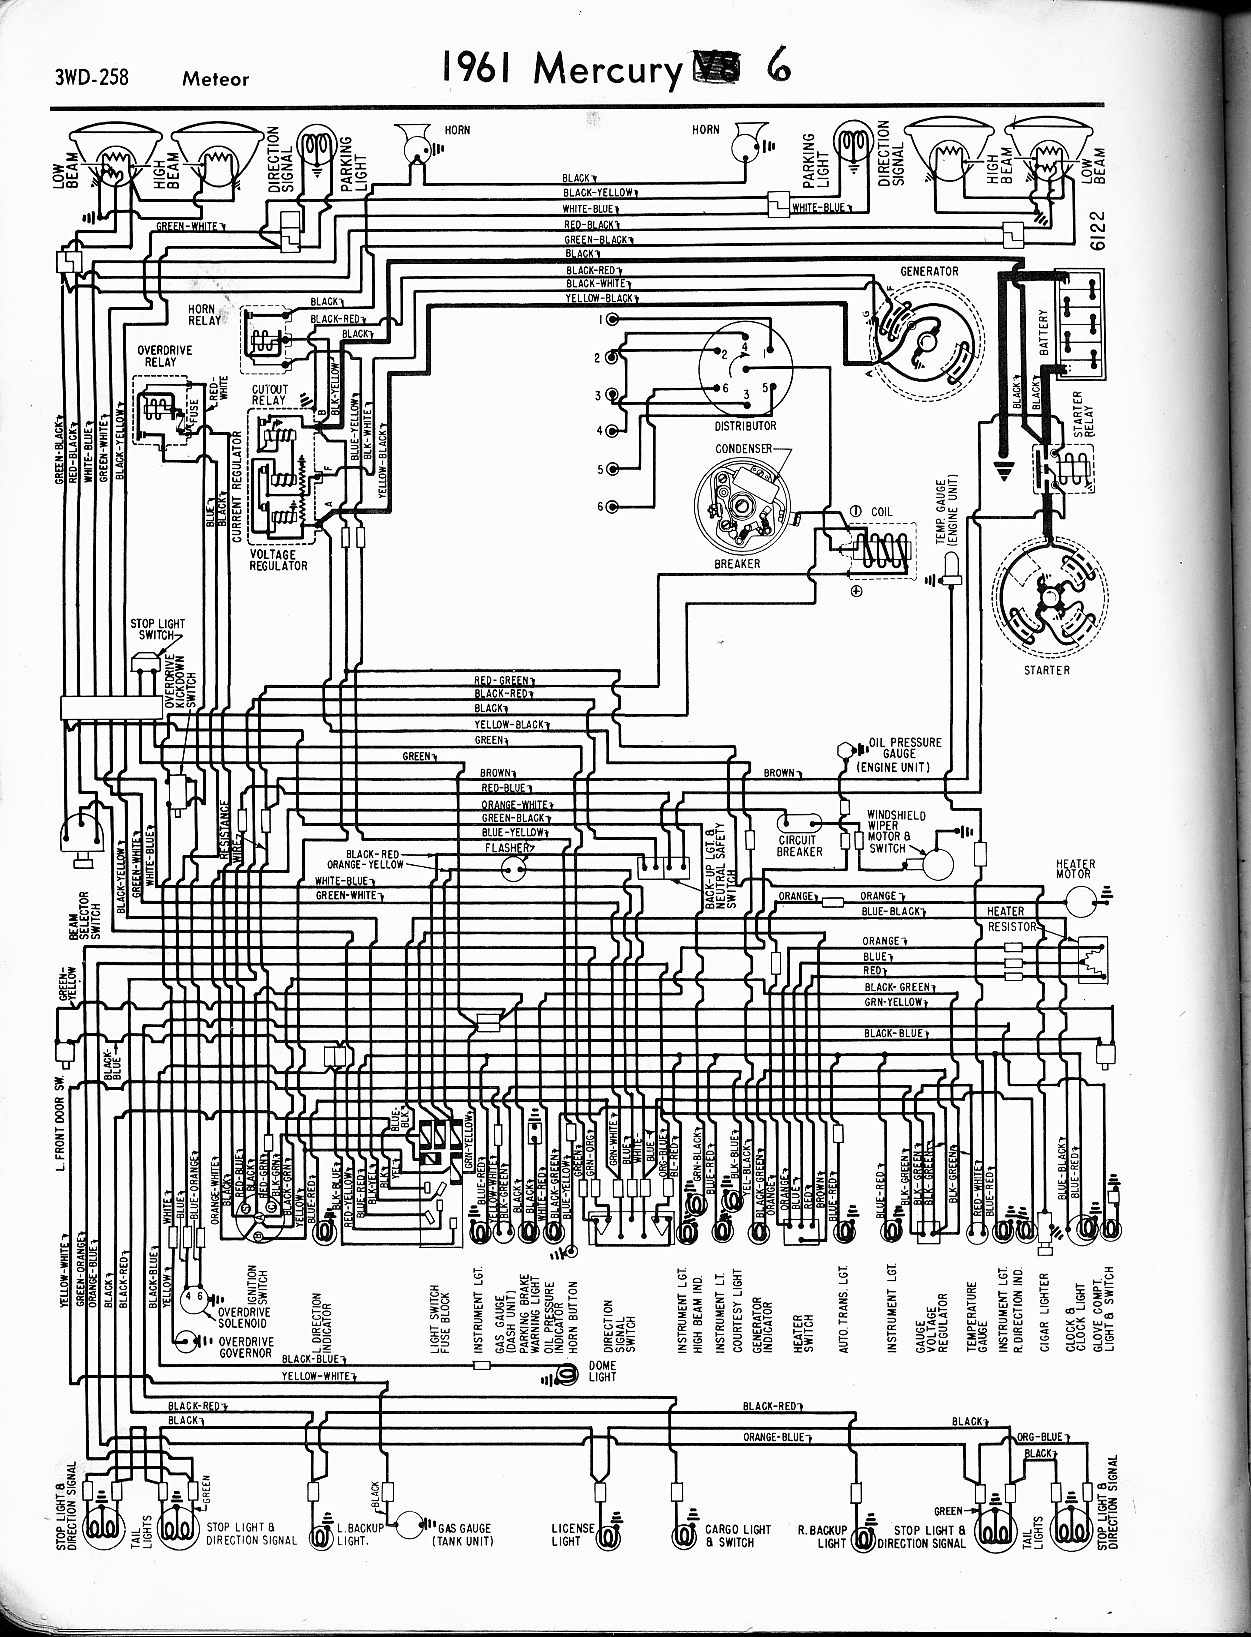 MWire5765 258 mercury wiring diagrams the old car manual project mercury wiring diagram at webbmarketing.co